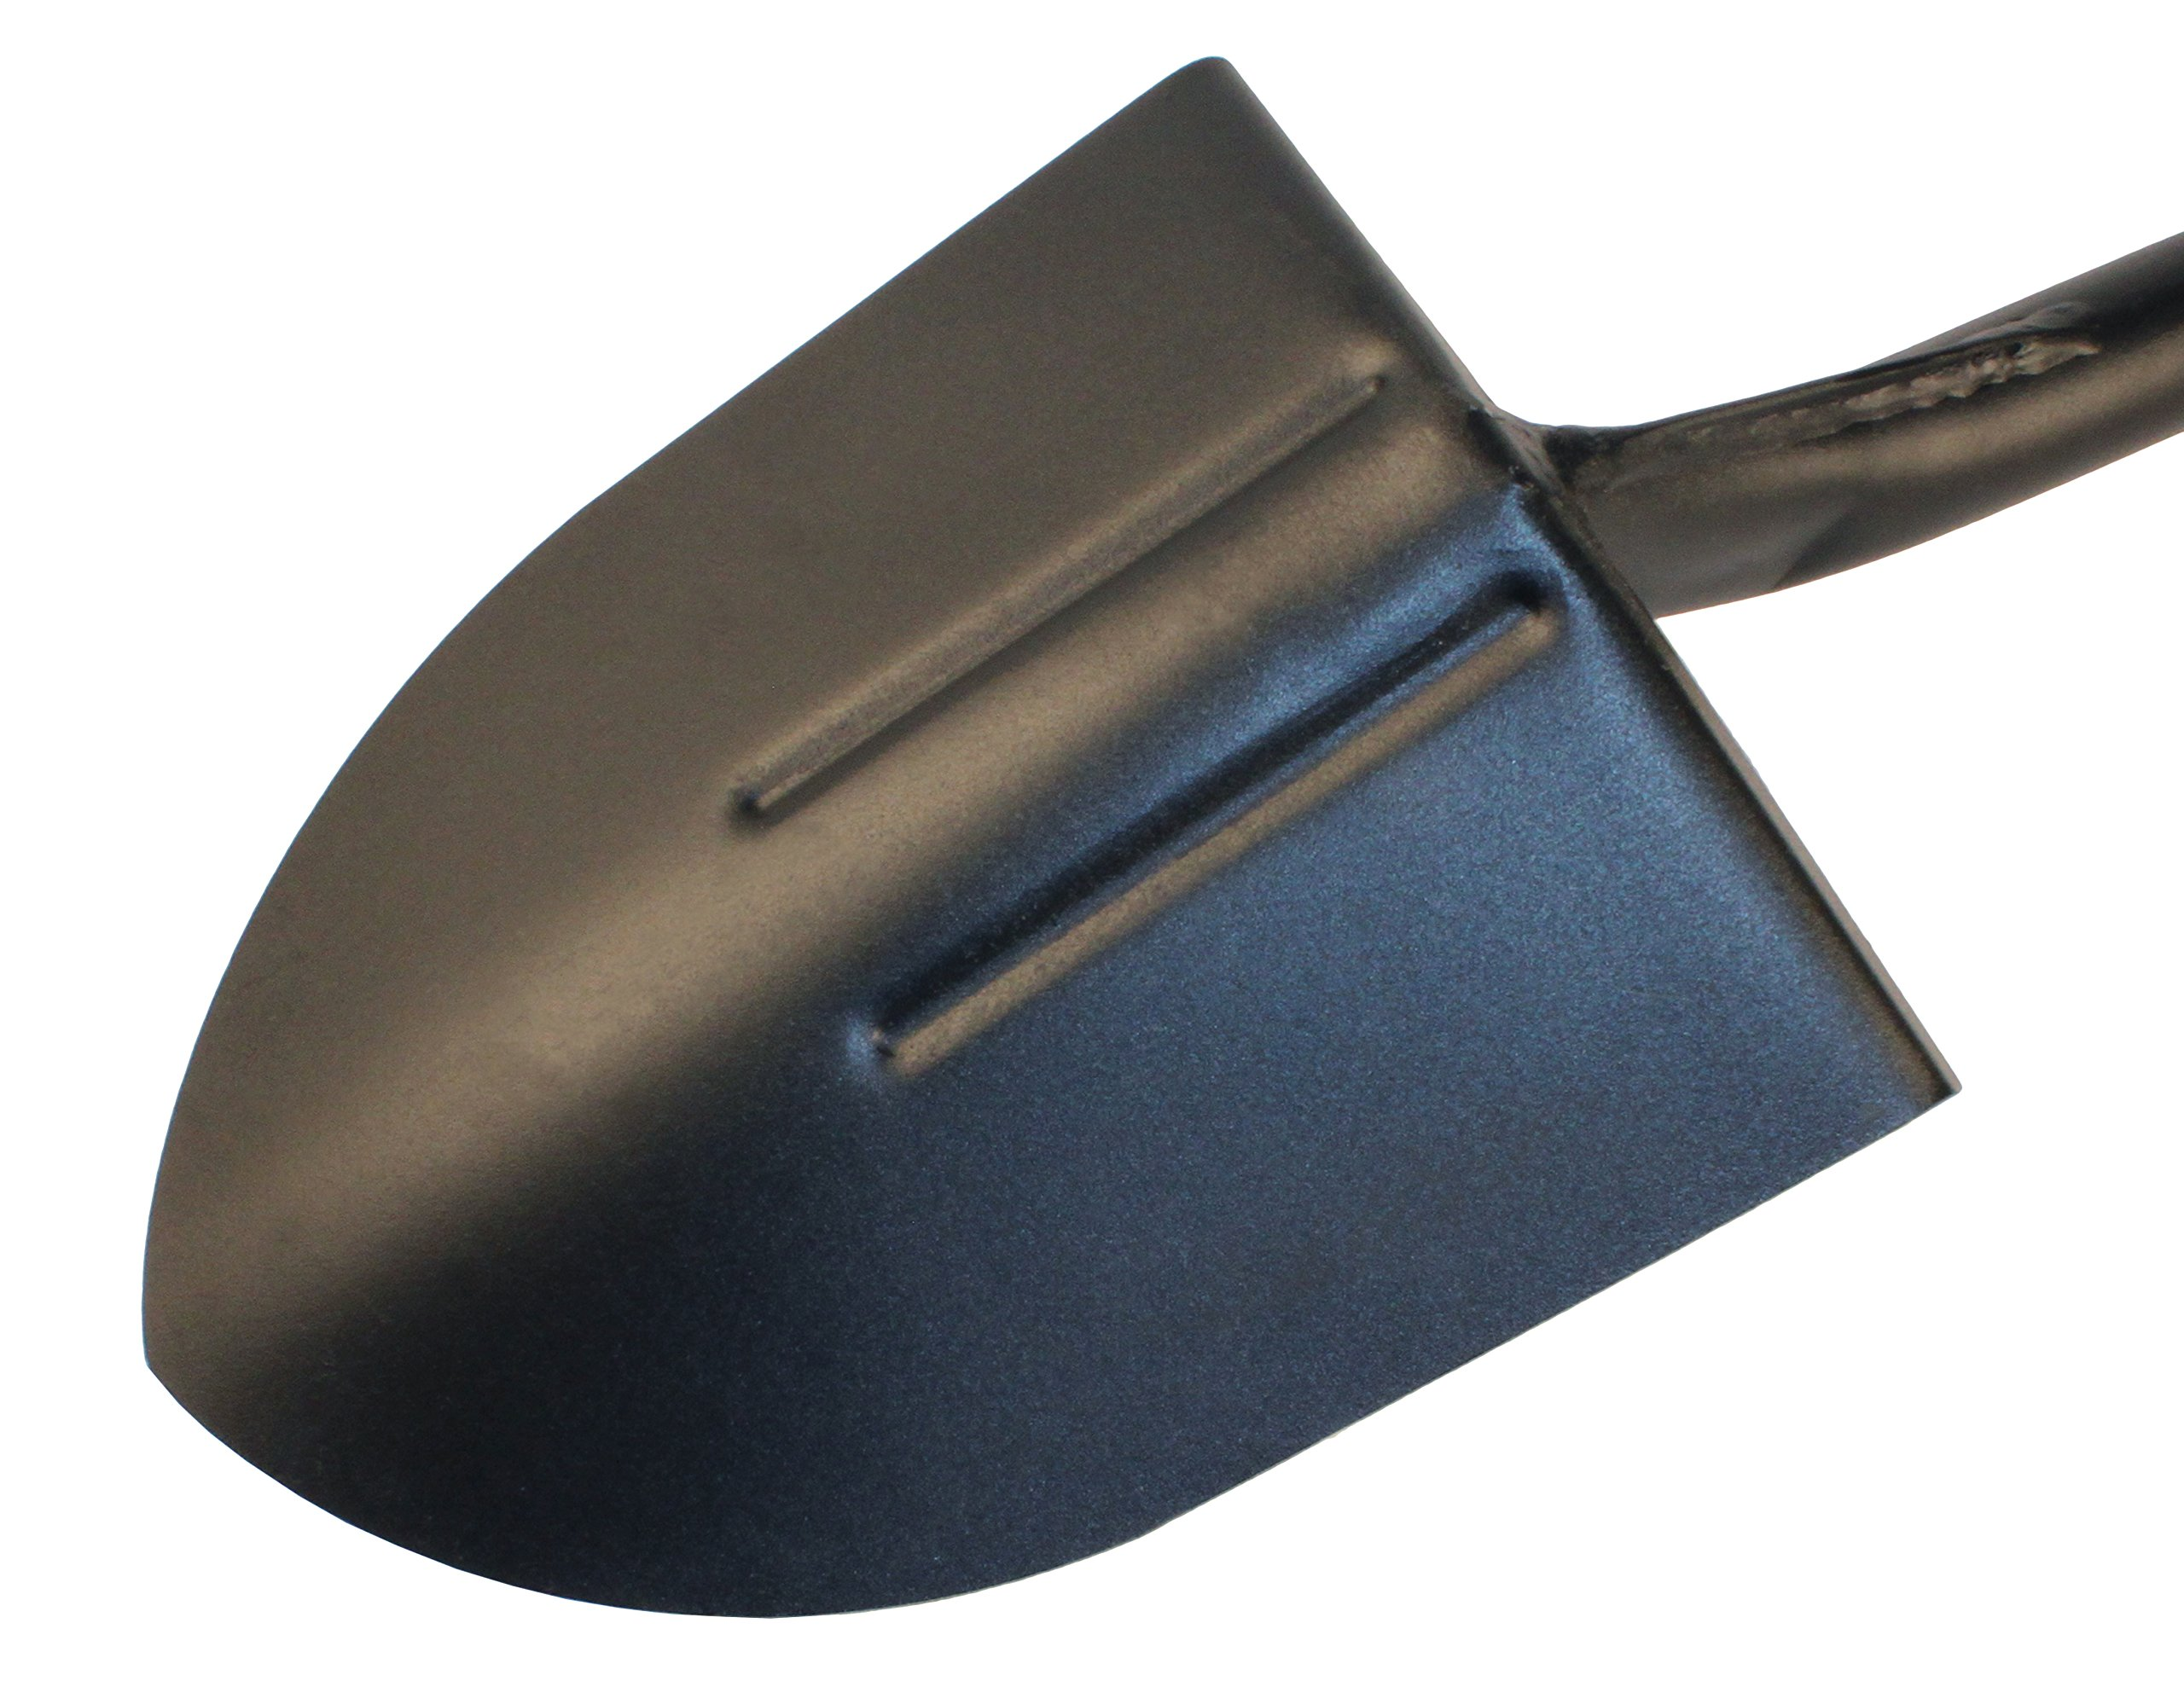 Bully Tools 72515 14-Gauge Round Point Shovel with American Ash Long Handle by Bully Tools (Image #3)